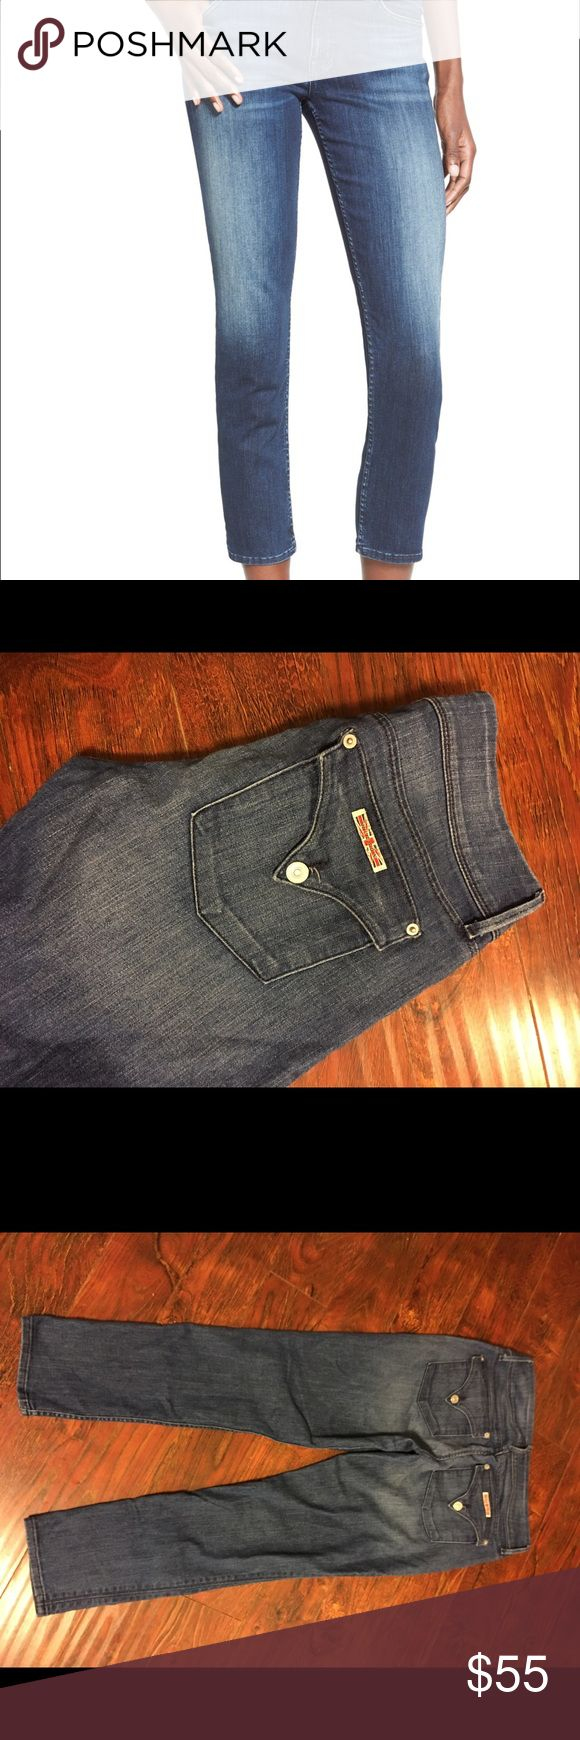 "Hudson women's crop jeans size 29 • Size 29 inseam 27.5"" • Gently used no stains fades or holes • Crop Jeans • Pet and smoke free home • Bundle for a cheaper shipping rate.  • Thanks for stopping by and please don't forget to check out my other listing. Hudson Jeans Jeans Ankle & Cropped"